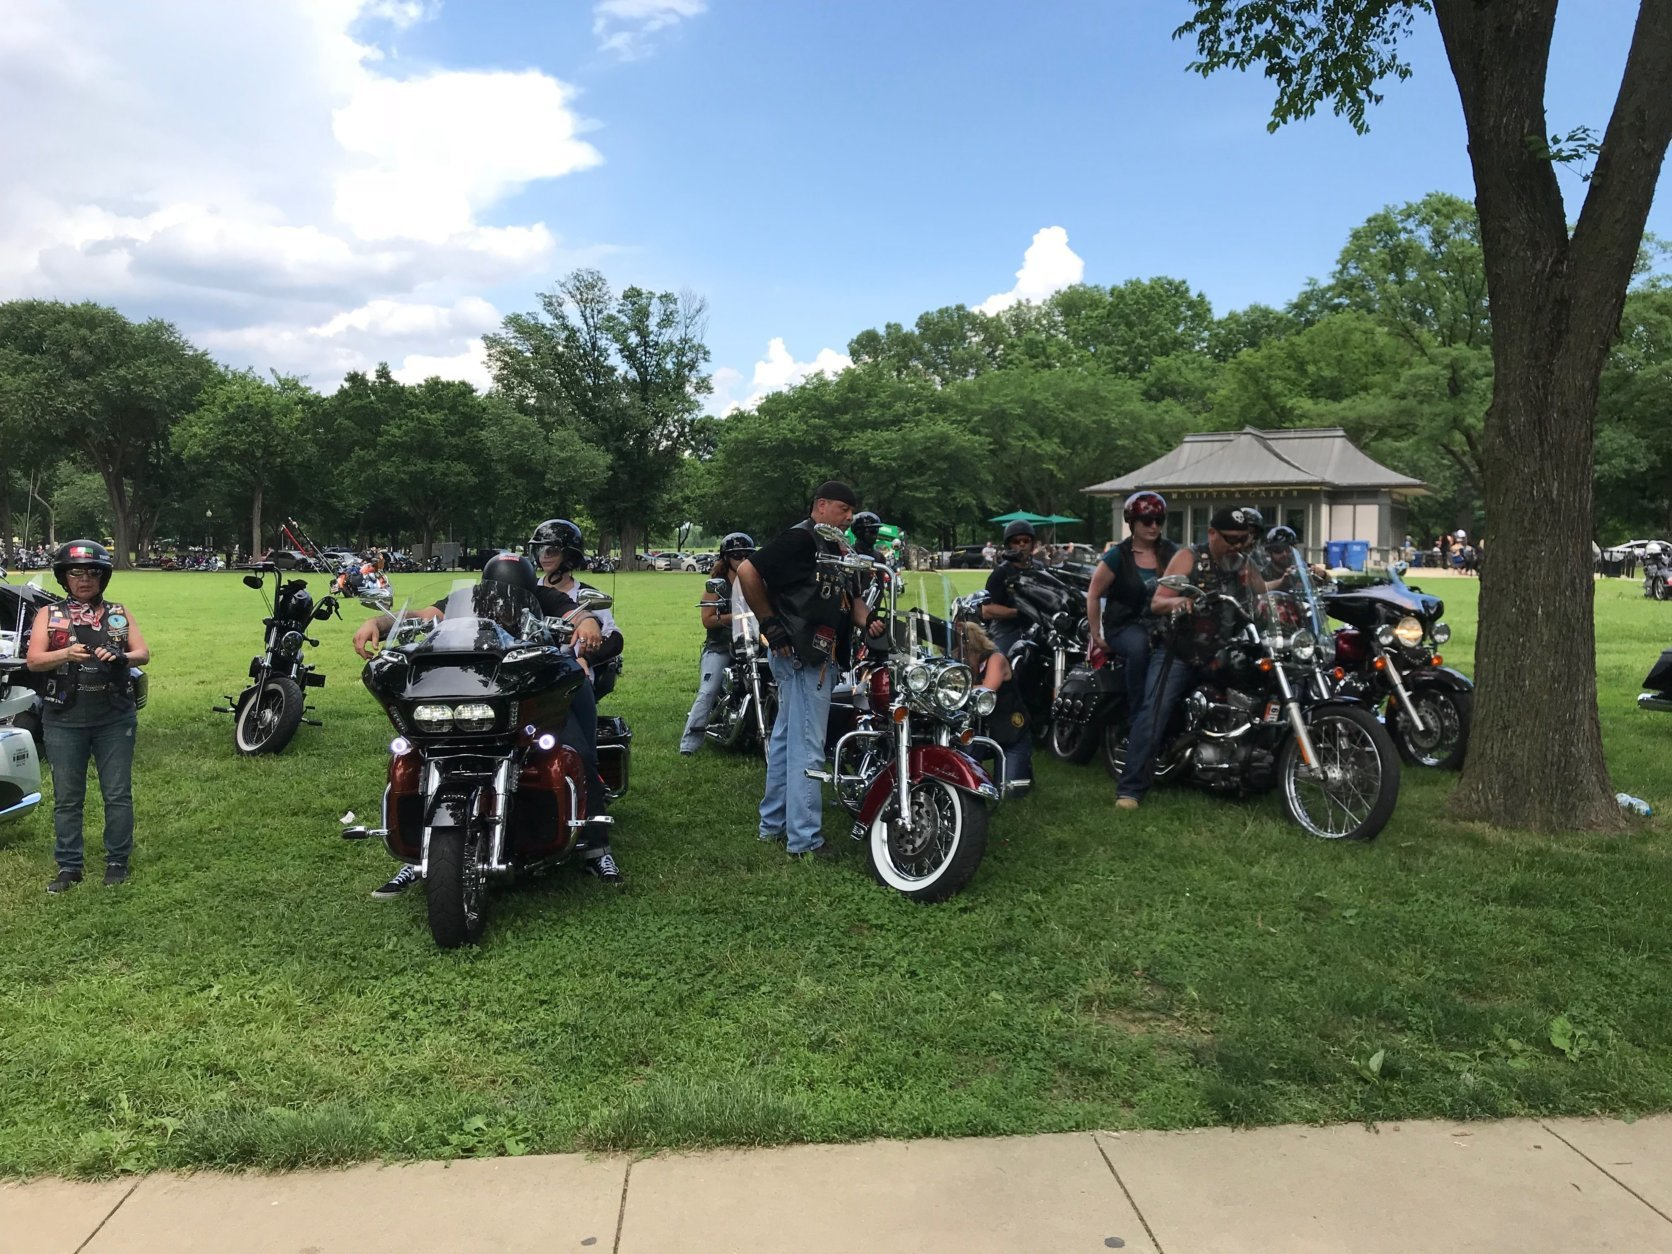 Rolling Thunder was established in 1987 to call attention to any prisoners of war or those listed as missing in action. Riders said they are also committed to helping U.S. veterans from all wars. (WTOP/Dick Uliano)